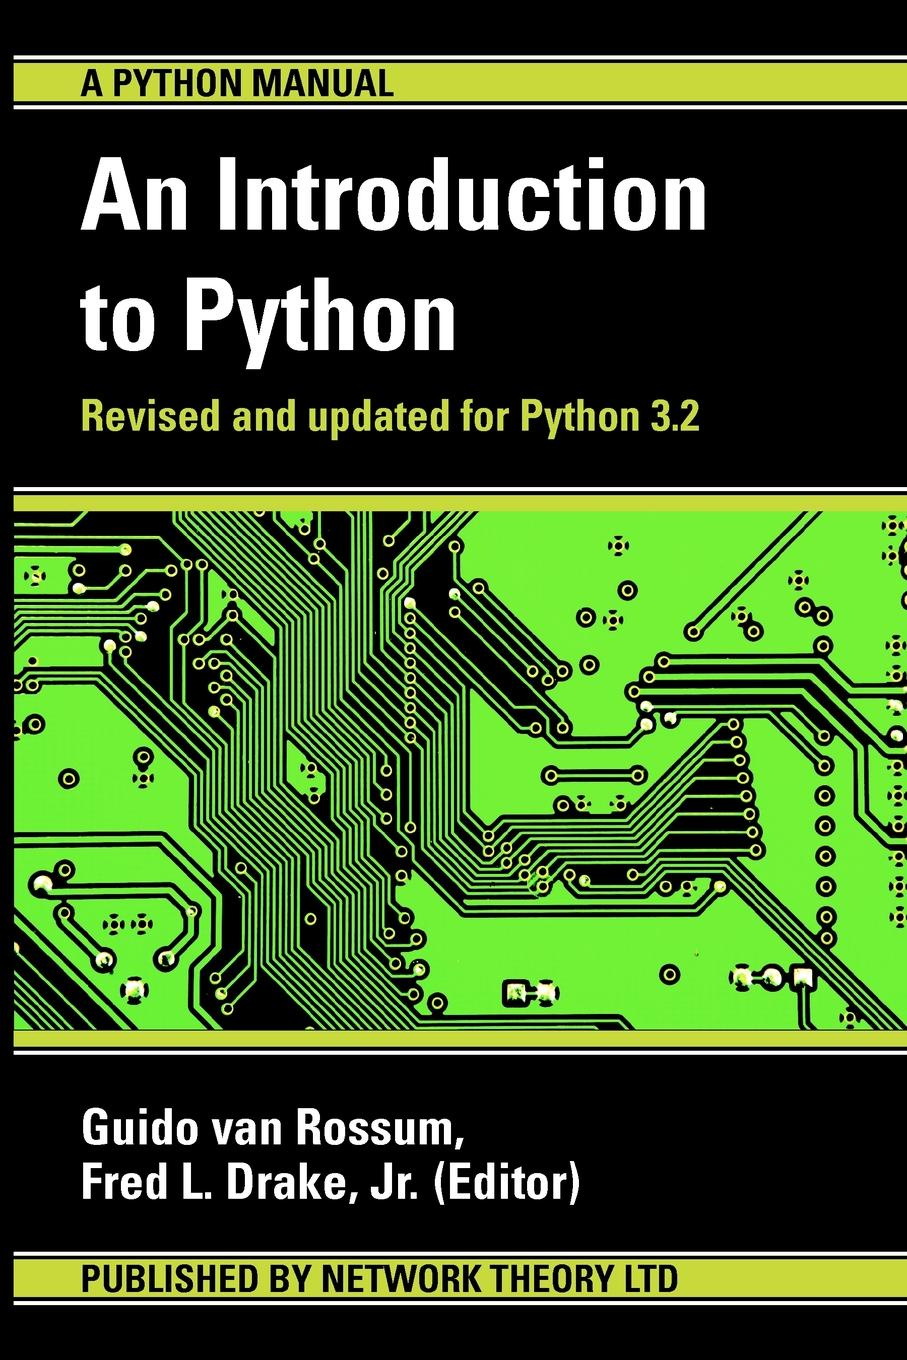 Guido Van Rossum, Fred L Drake Jr An Introduction to Python james payne beginning python using python 2 6 and python 3 1